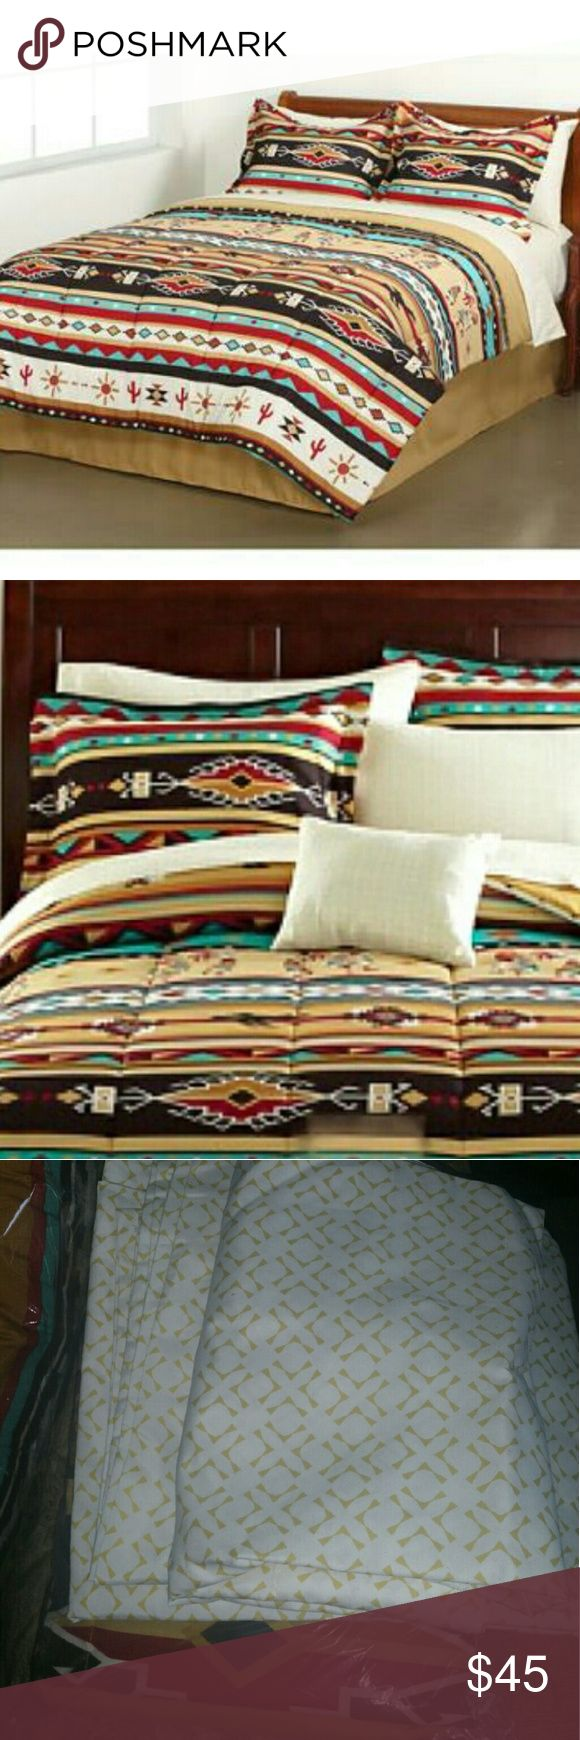 "Southwest Turquoise Tan Red Native American Full. The Mainstays Kokopelli Stripe Bed in a Bag Bedding Set features classic geometric patterns and kokopelli silhouettes. Tans, reds and turquoise create a distinctly southwestern feel. The soft and cozy microfiber comforter has a tan reverse and comes with coordinating shams, a bed skirt and a complete sheet set. It's machine washable for easy care.Full set includes: comforter (76"" x 86""), flat sheet (81"" x 96""), 2 standard pillowcases (20"" x…"